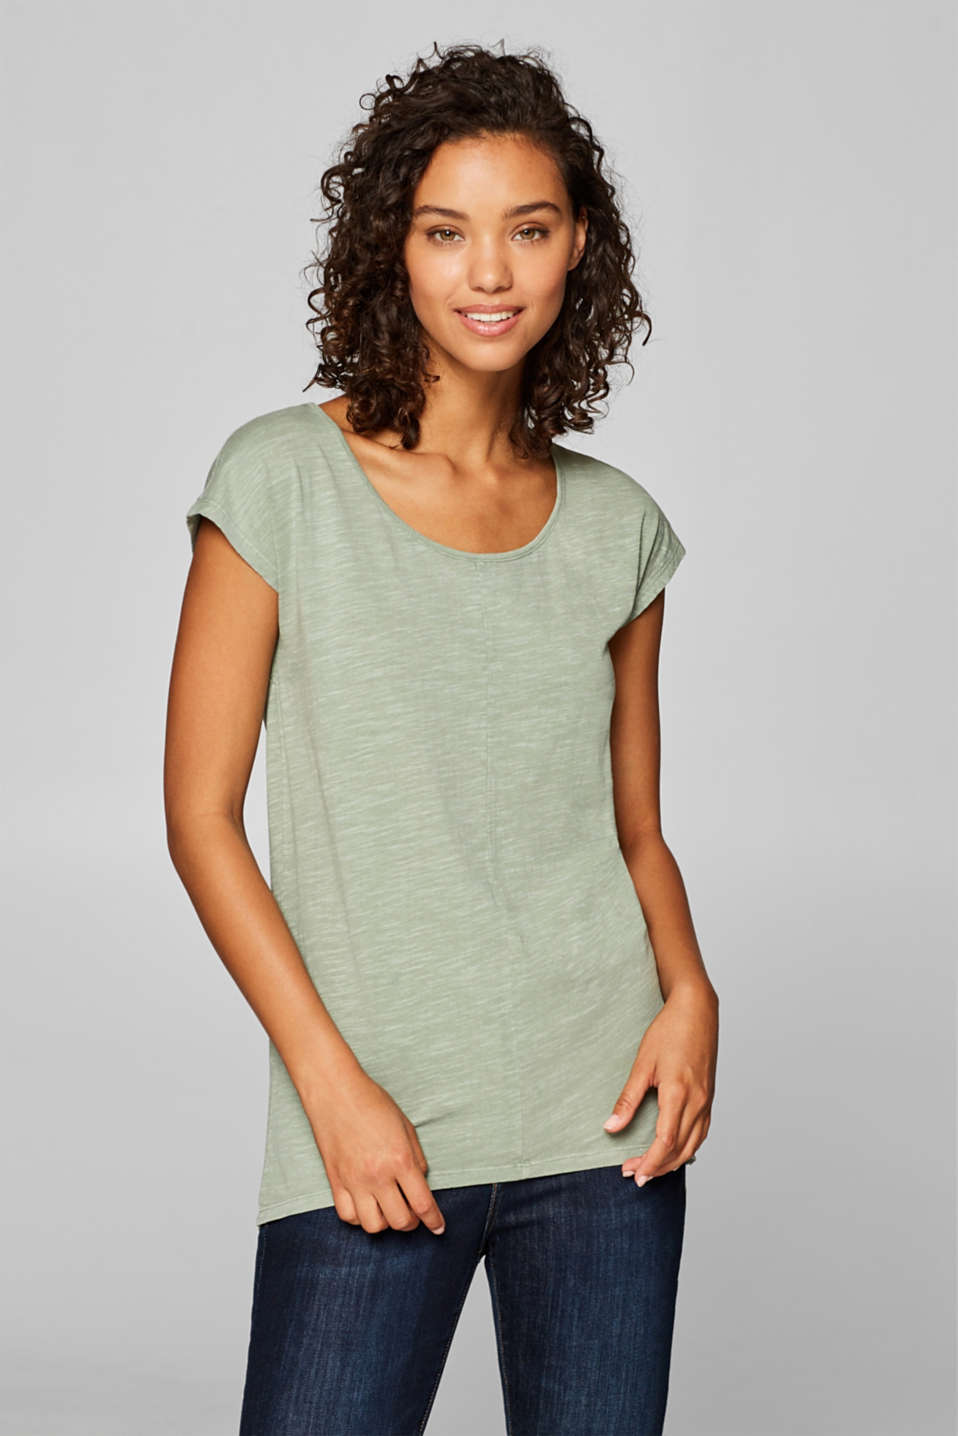 edc - T-shirt with a high-low hem, 100% cotton